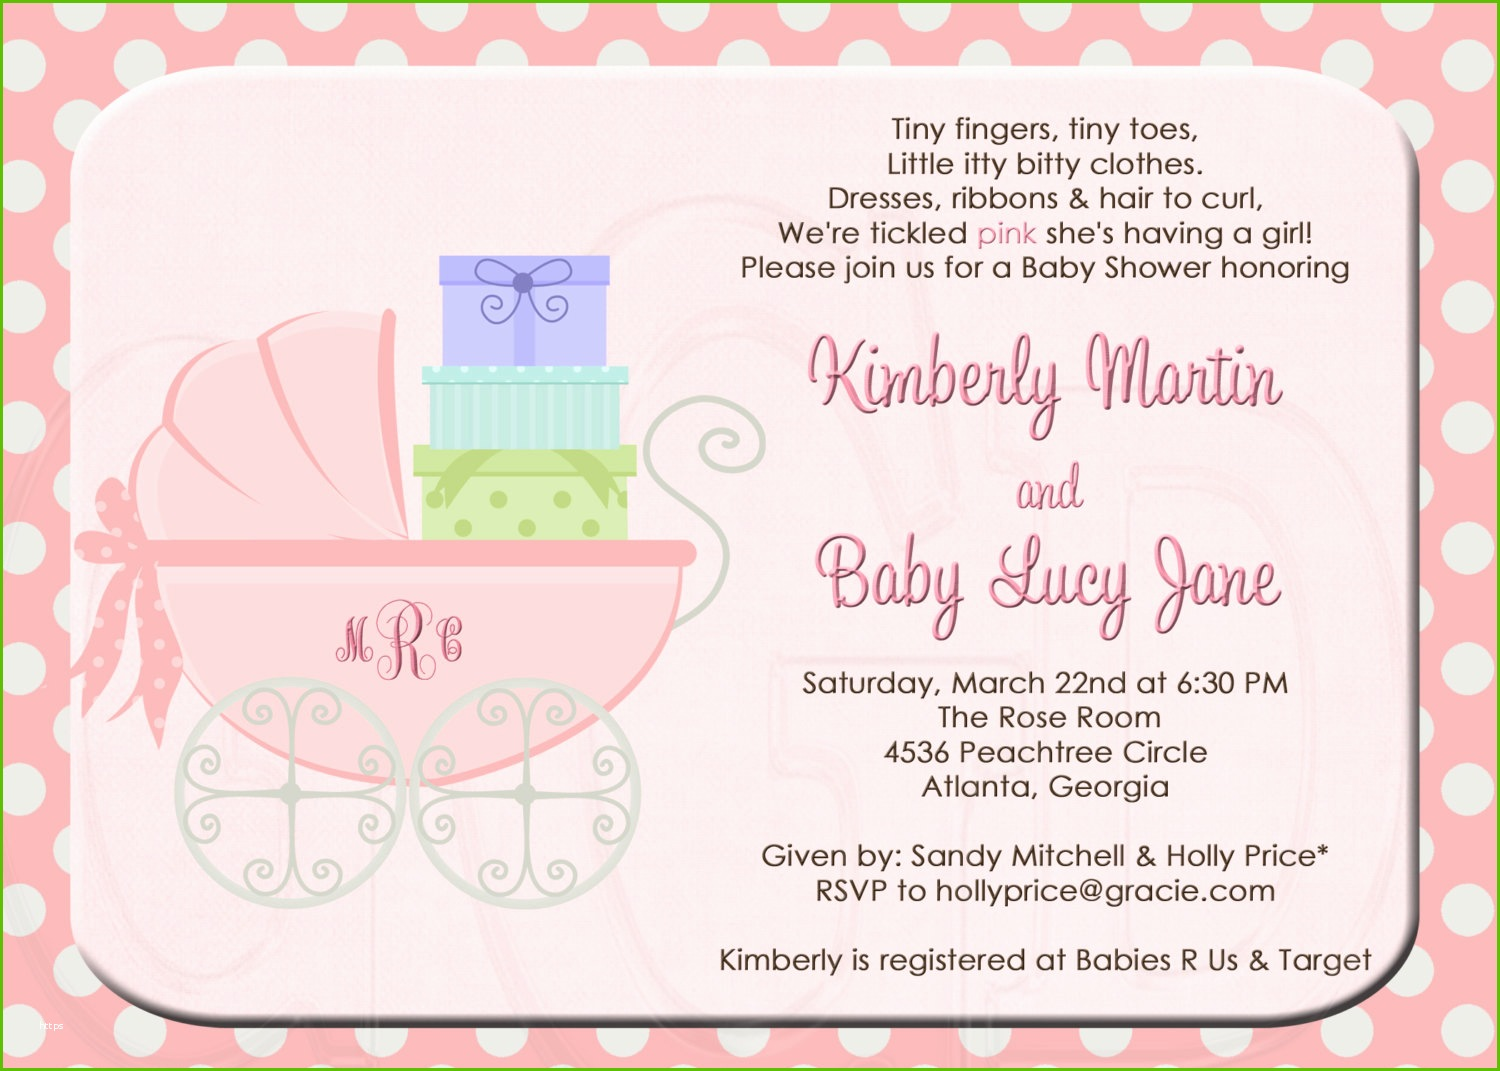 Full Size of Baby Shower:delightful Baby Shower Invitation Wording Picture Designs Baby Shower Invitation Wording Funny Baby Shower Invitation Wording Beautiful Baby Shower Funny Baby Shower Invitation Wording Beautiful Baby Shower Invitation Wording Ideas